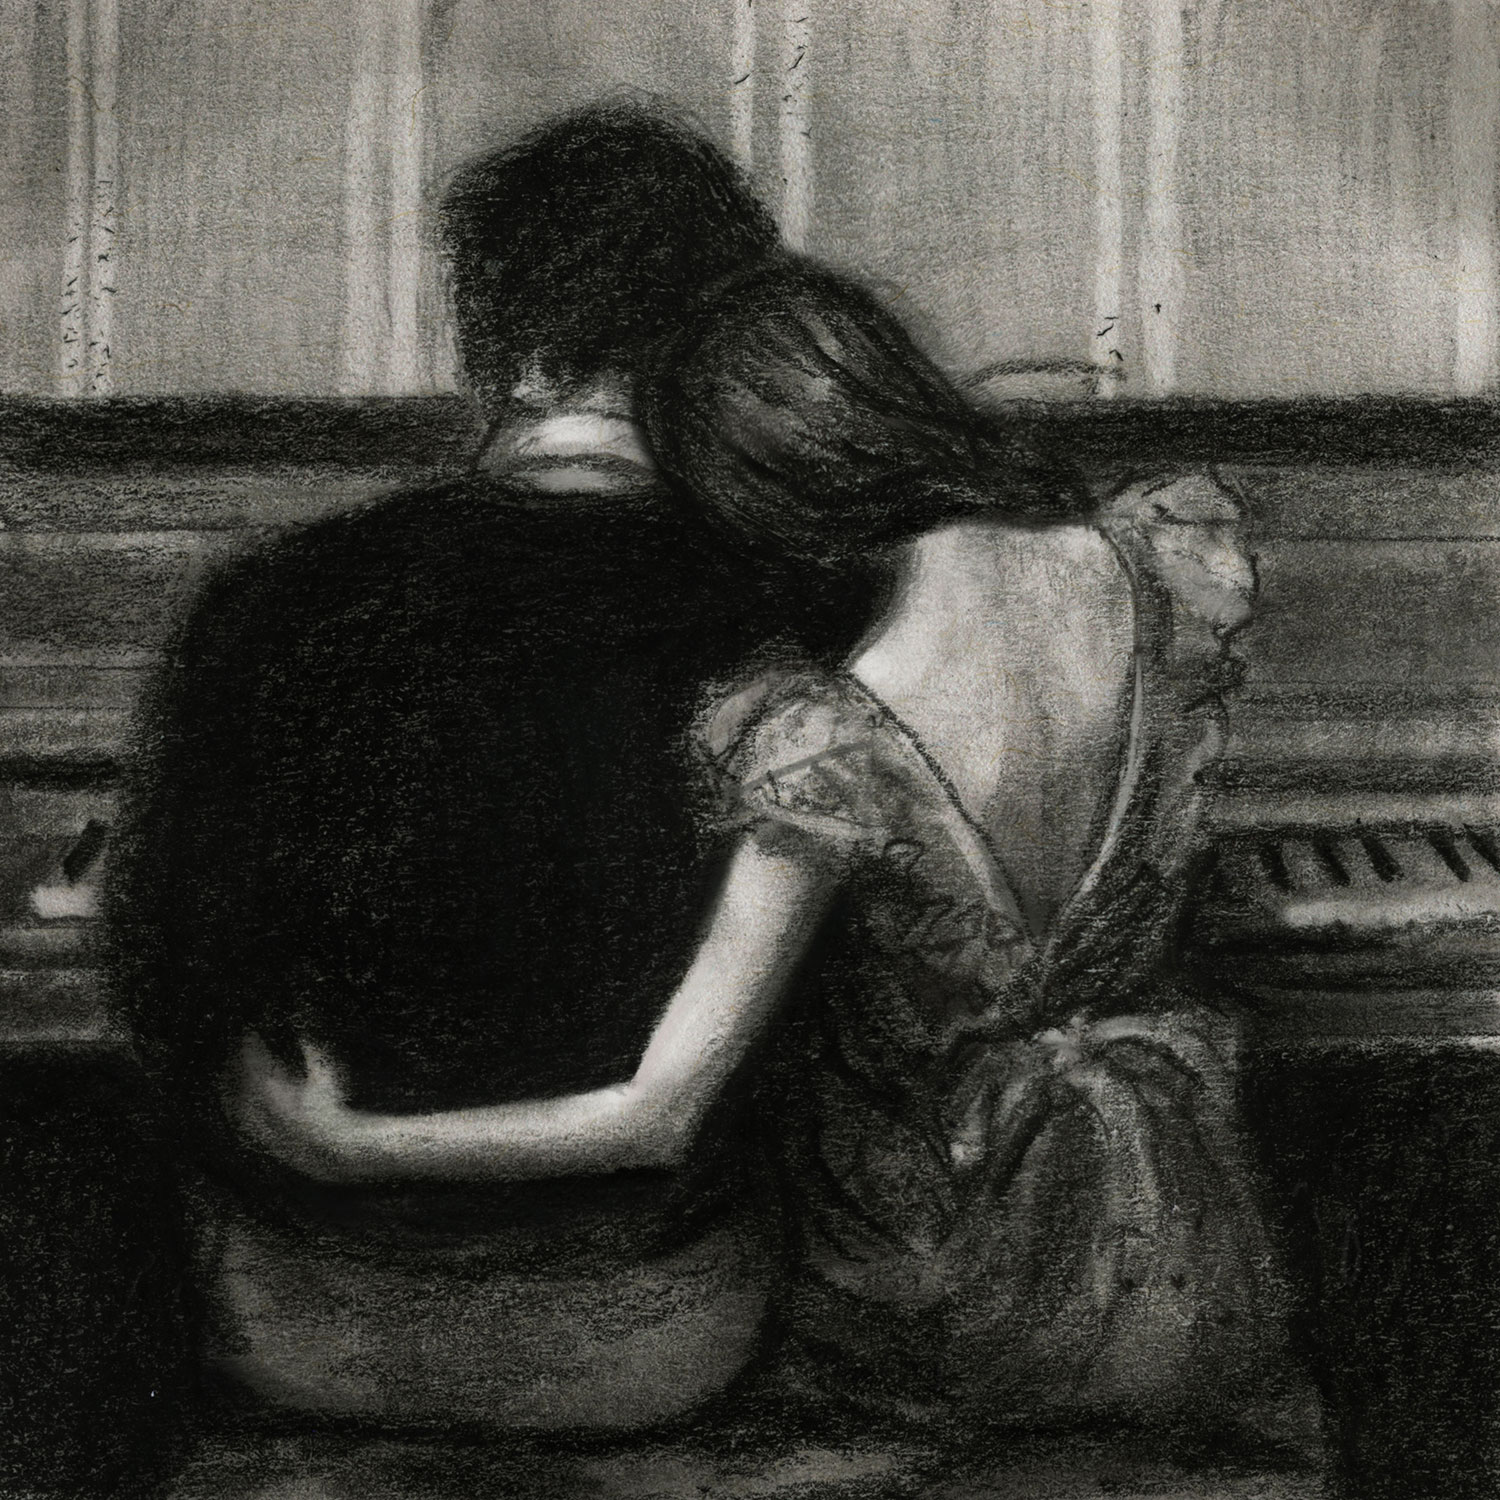 Black and white sketch by danny roberts of a couple at the paino inspired by Joseph Lorusso playing their song painting